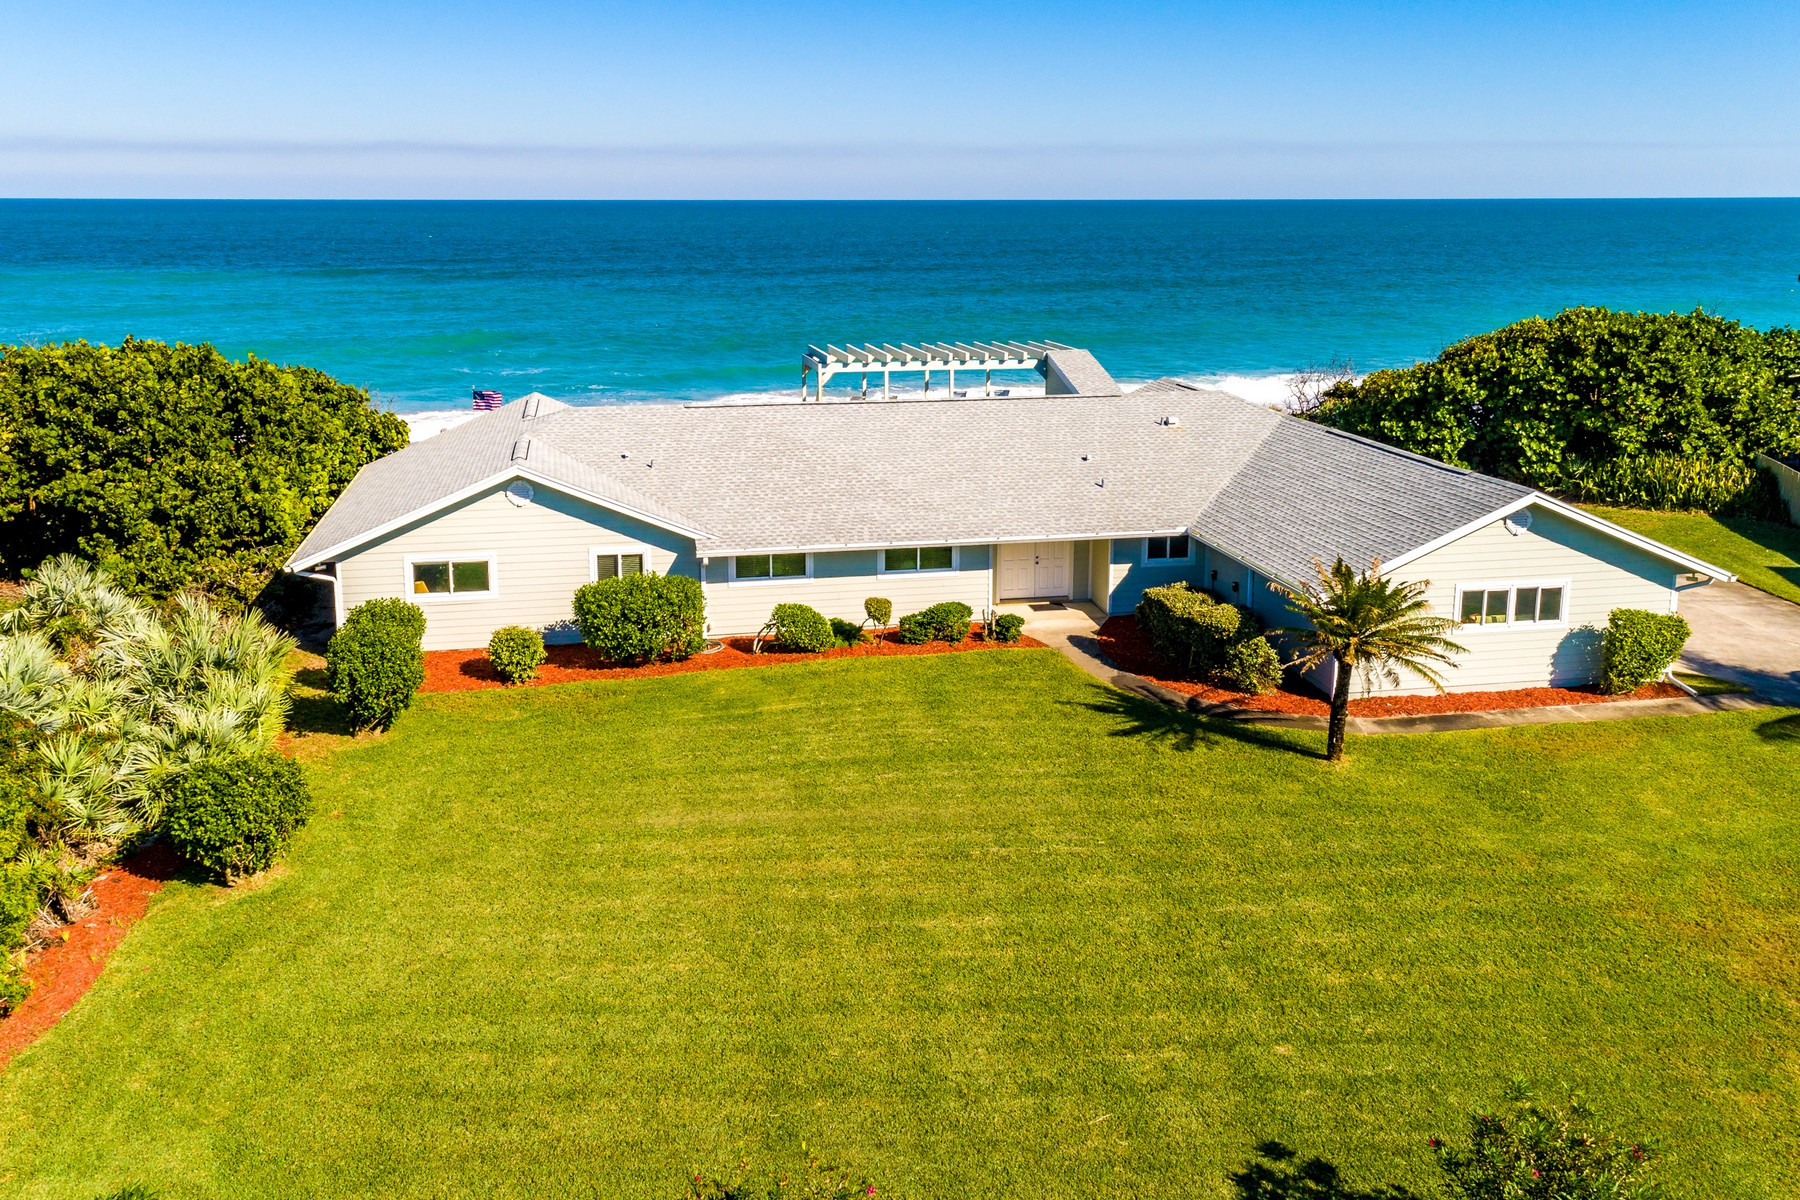 Single Family Homes for Sale at Incredible Oceanfront Property Featuring Over 135' of Ocean Frontage 3785 Highway A1A Melbourne Beach, Florida 32951 United States